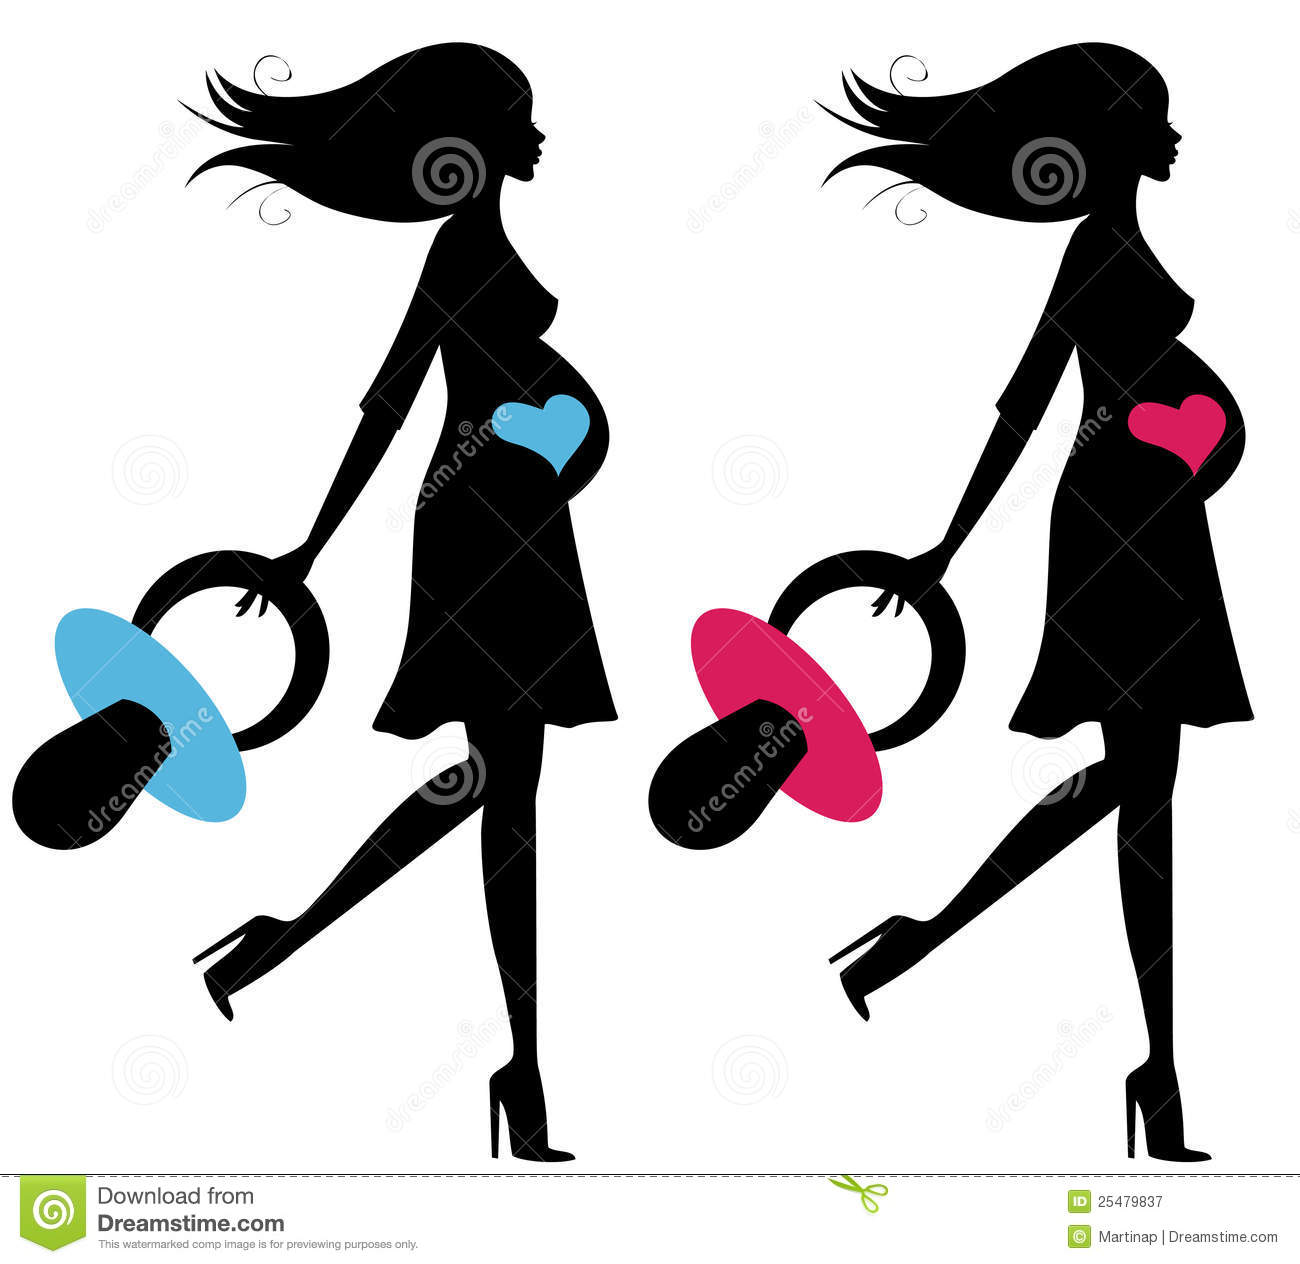 Stock Illustration Profile Pregnant Woman Made Rose Petals Vector Mesh Illustration Image60387779 likewise Stock De Ilustraci C3 B3n S C3 ADmbolo De La Mujer Embarazada Image41574288 as well Stock Photography Pregnant Woman Stylized Symbol Silhouette Image35624182 further Clipart Stomach besides Pregnant Woman Heart On Belly Clipart. on pregnant belly silhouette clip art